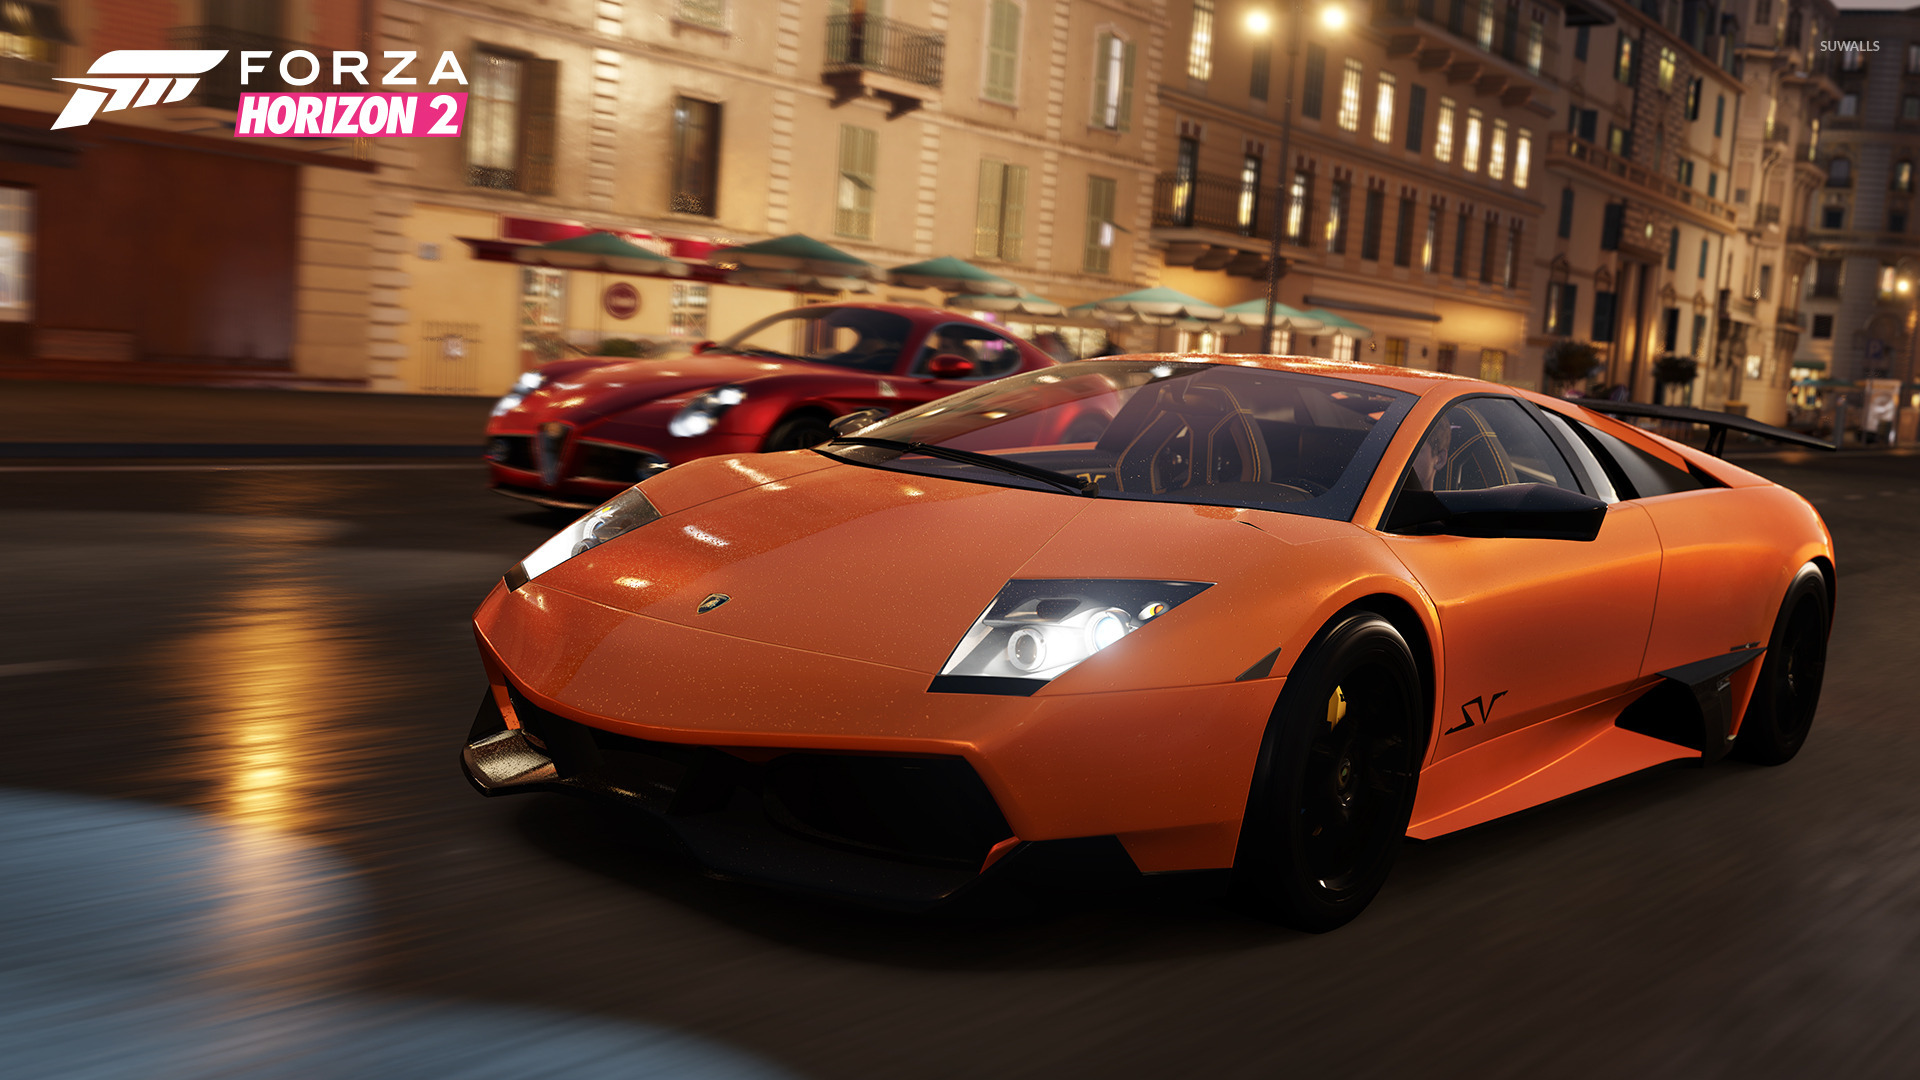 forza horizon 2 13 wallpaper game wallpapers 33827. Black Bedroom Furniture Sets. Home Design Ideas